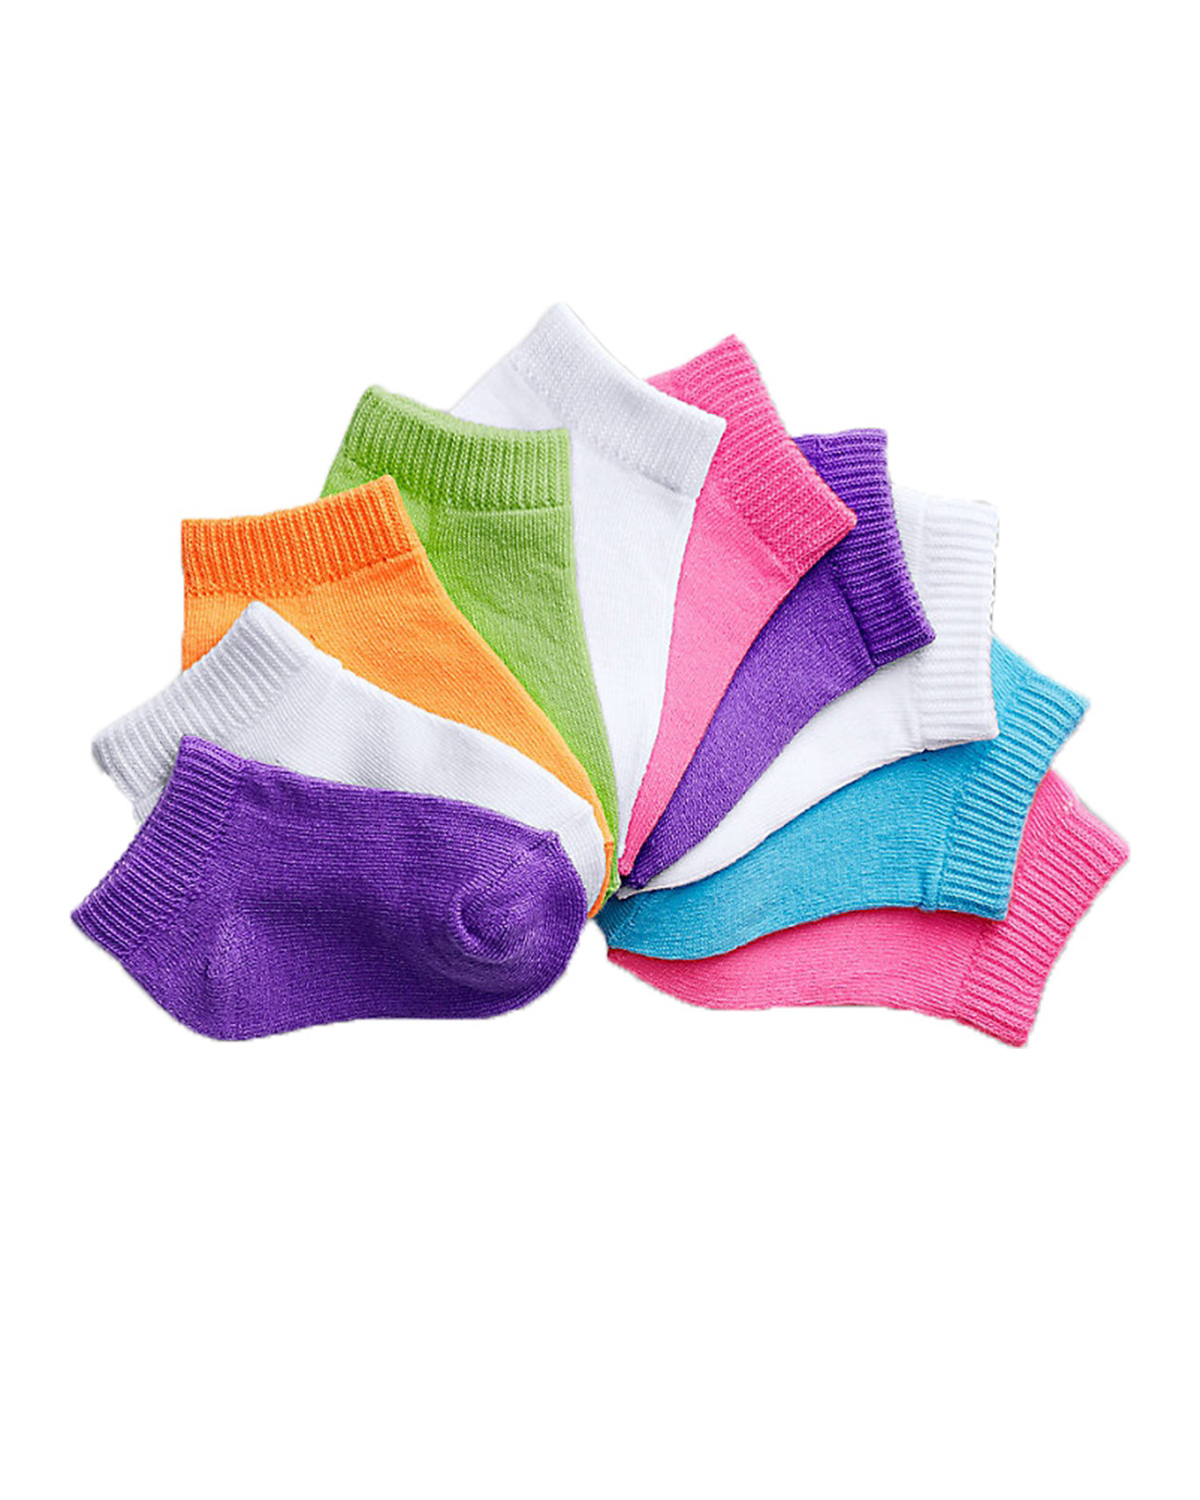 'Hanes 38/10 Girls' Infant/Toddler Low-Cut EZ Sort Assorted 10-Pack'